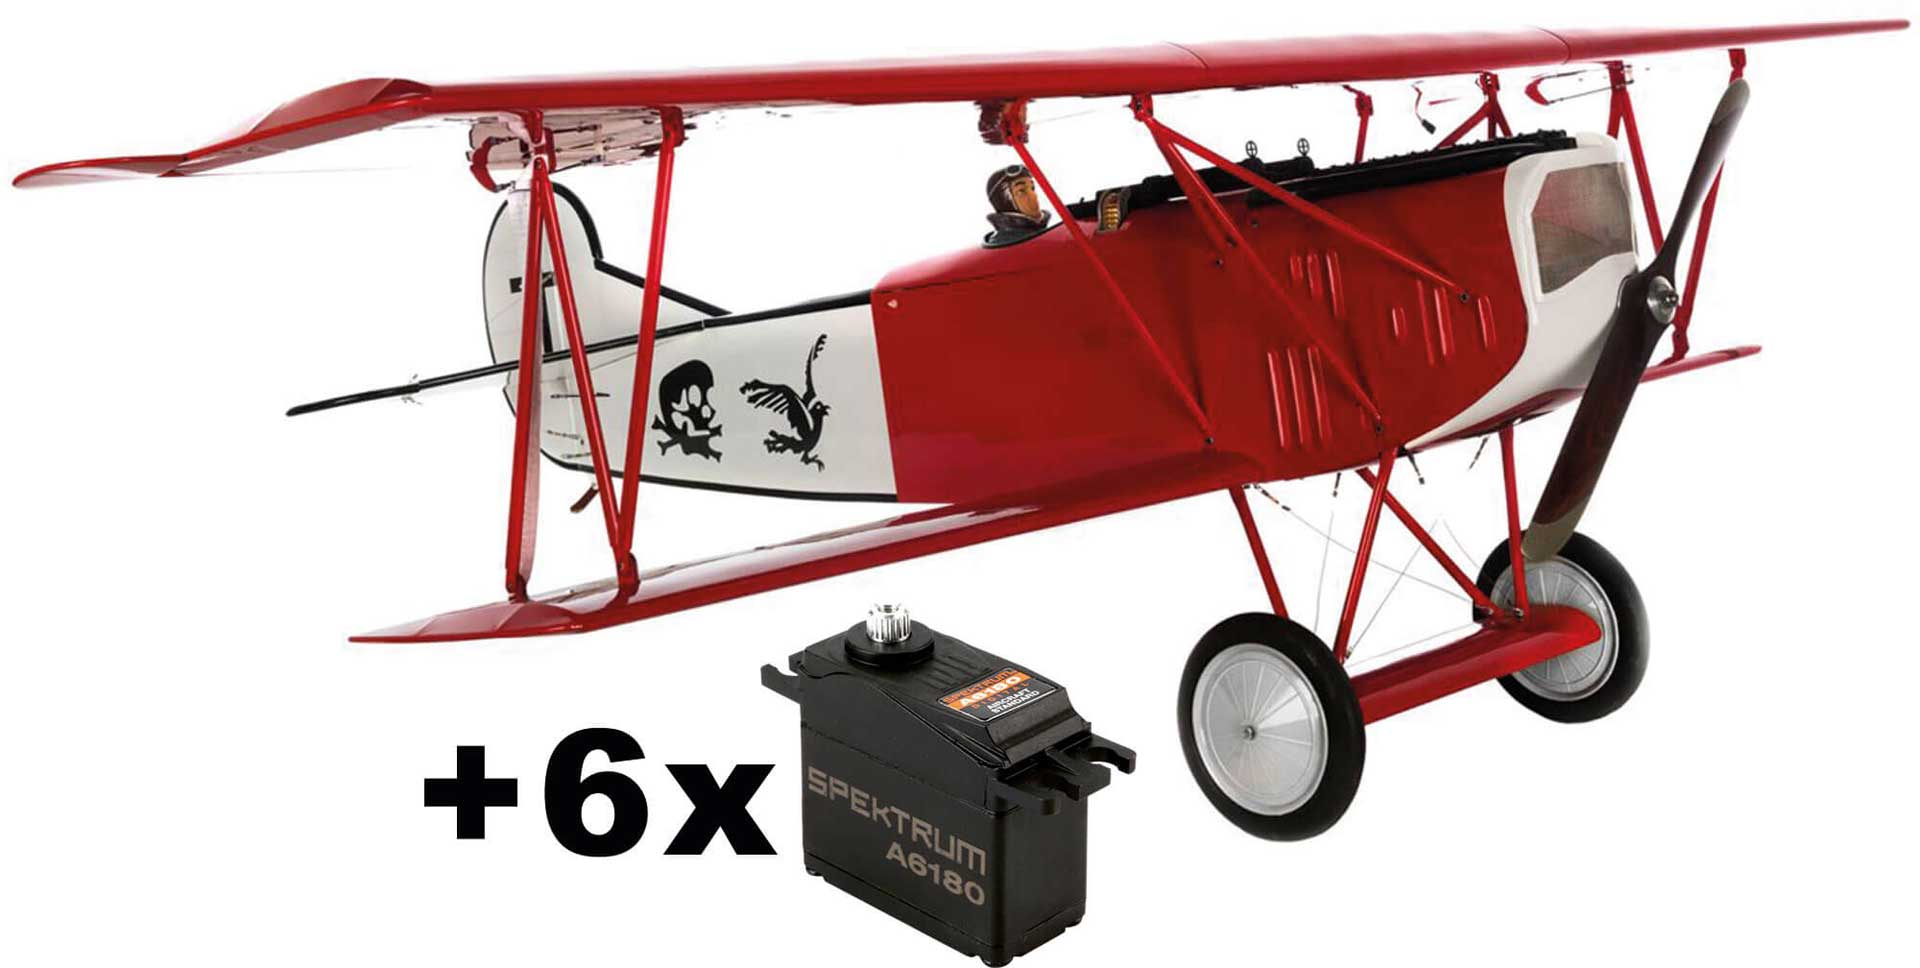 HANGAR 9 Fokker D.VII 30-60cc ARF Action SVR with 6pcs. Spektrum A6180 servos